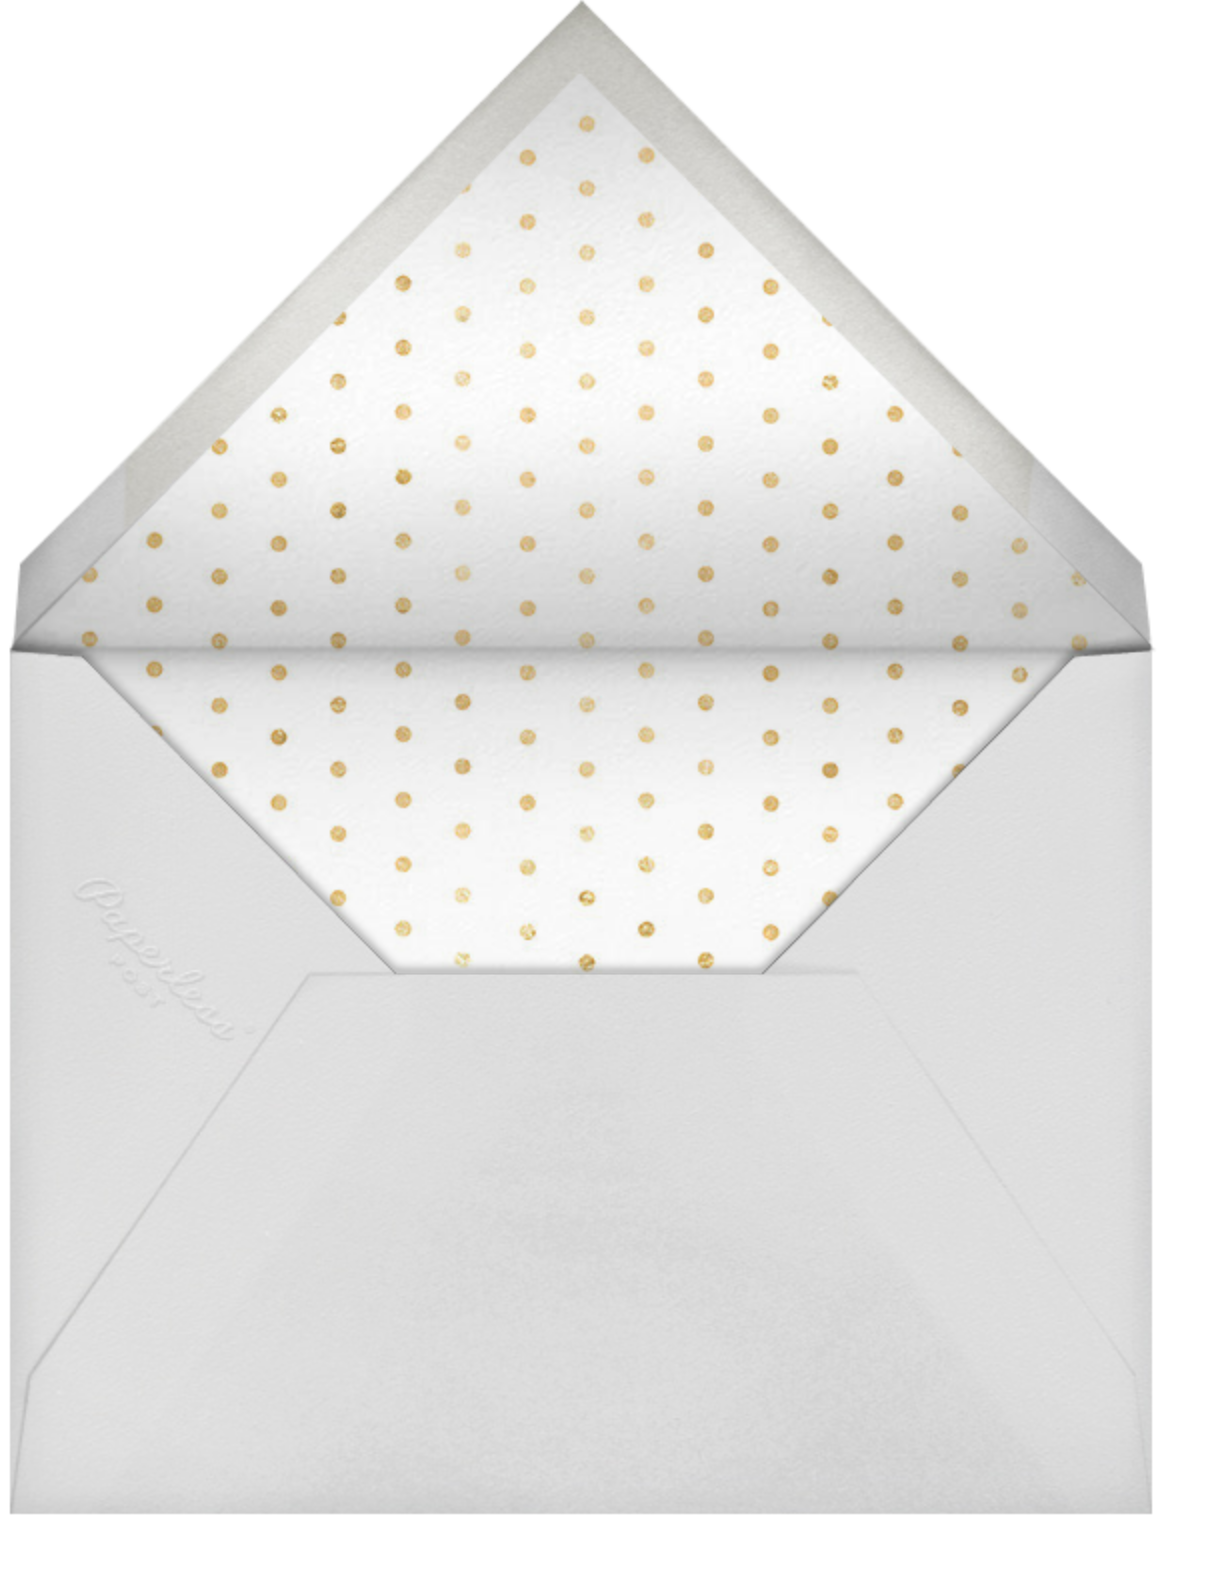 Monkey Suits - Paperless Post - New Year's Eve - envelope back